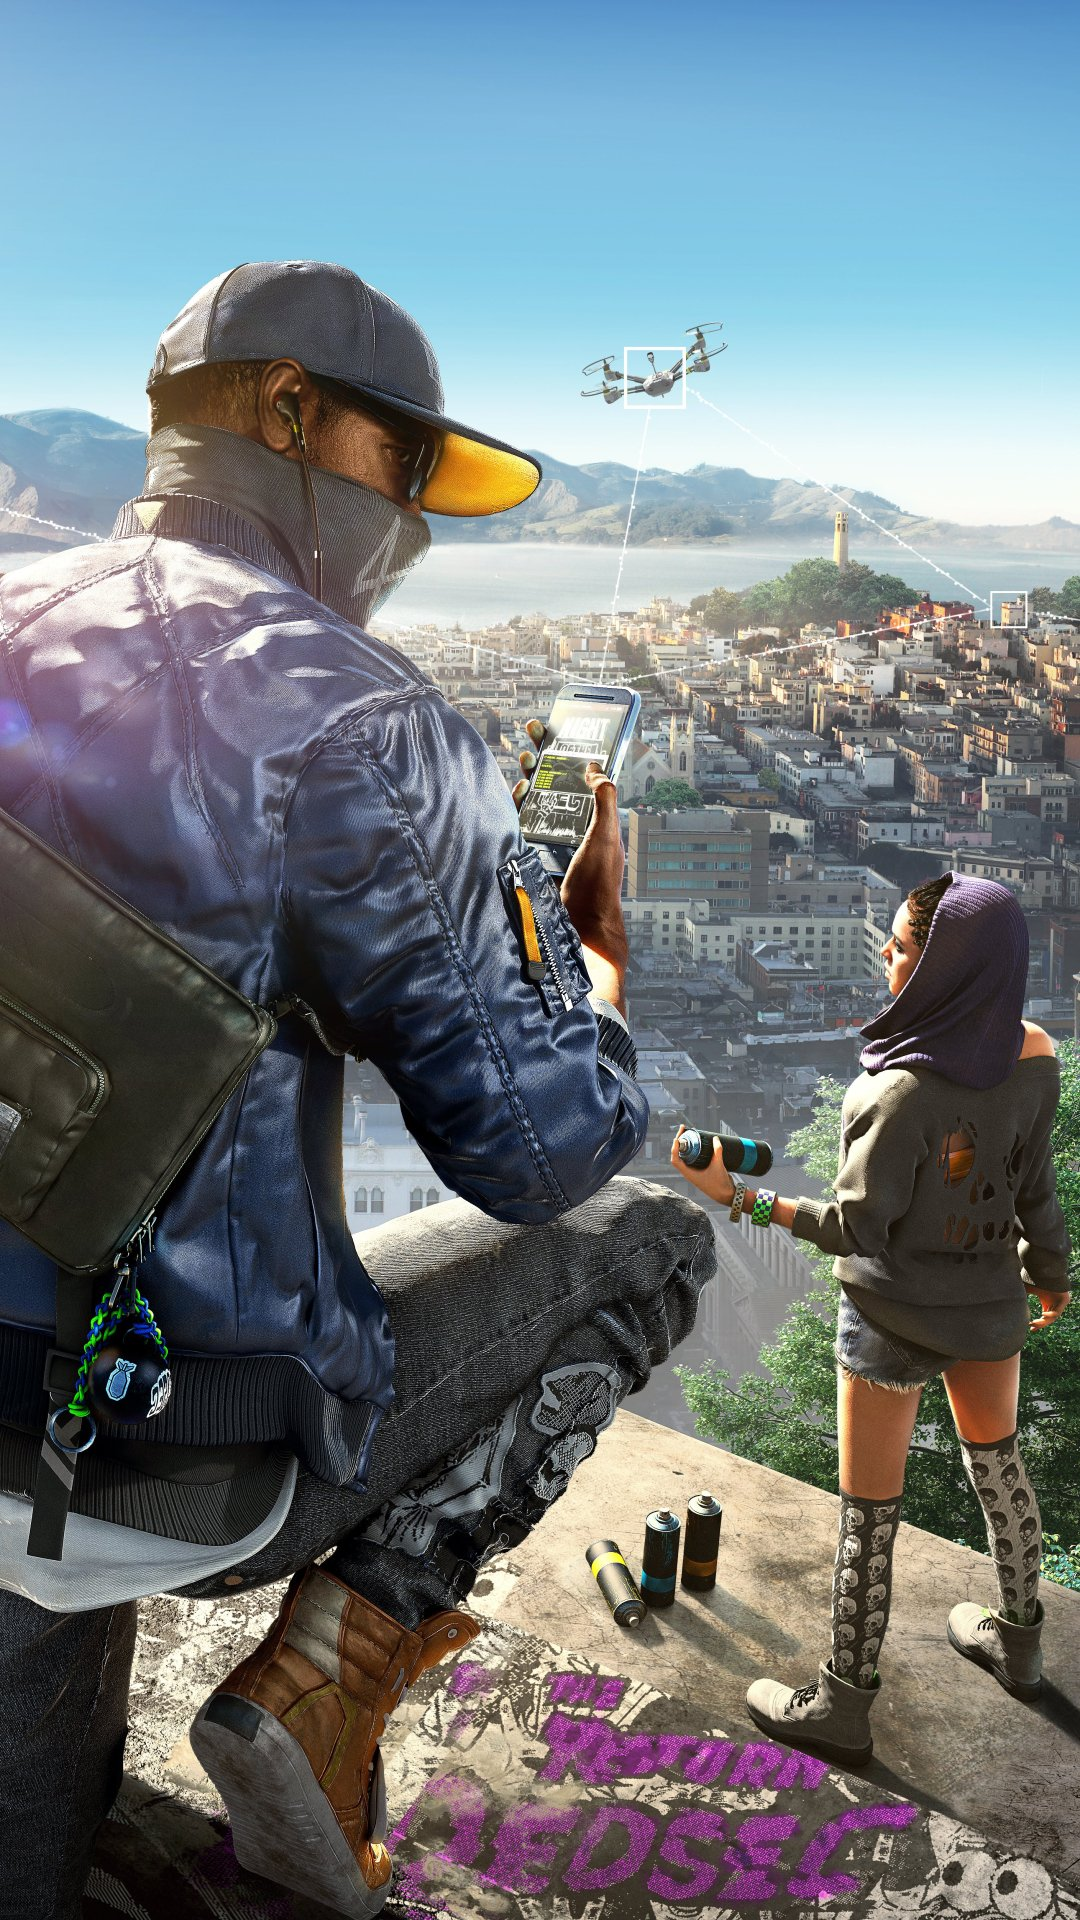 73+ Watch Dogs 2 Video Game Wallpapers on WallpaperSafari